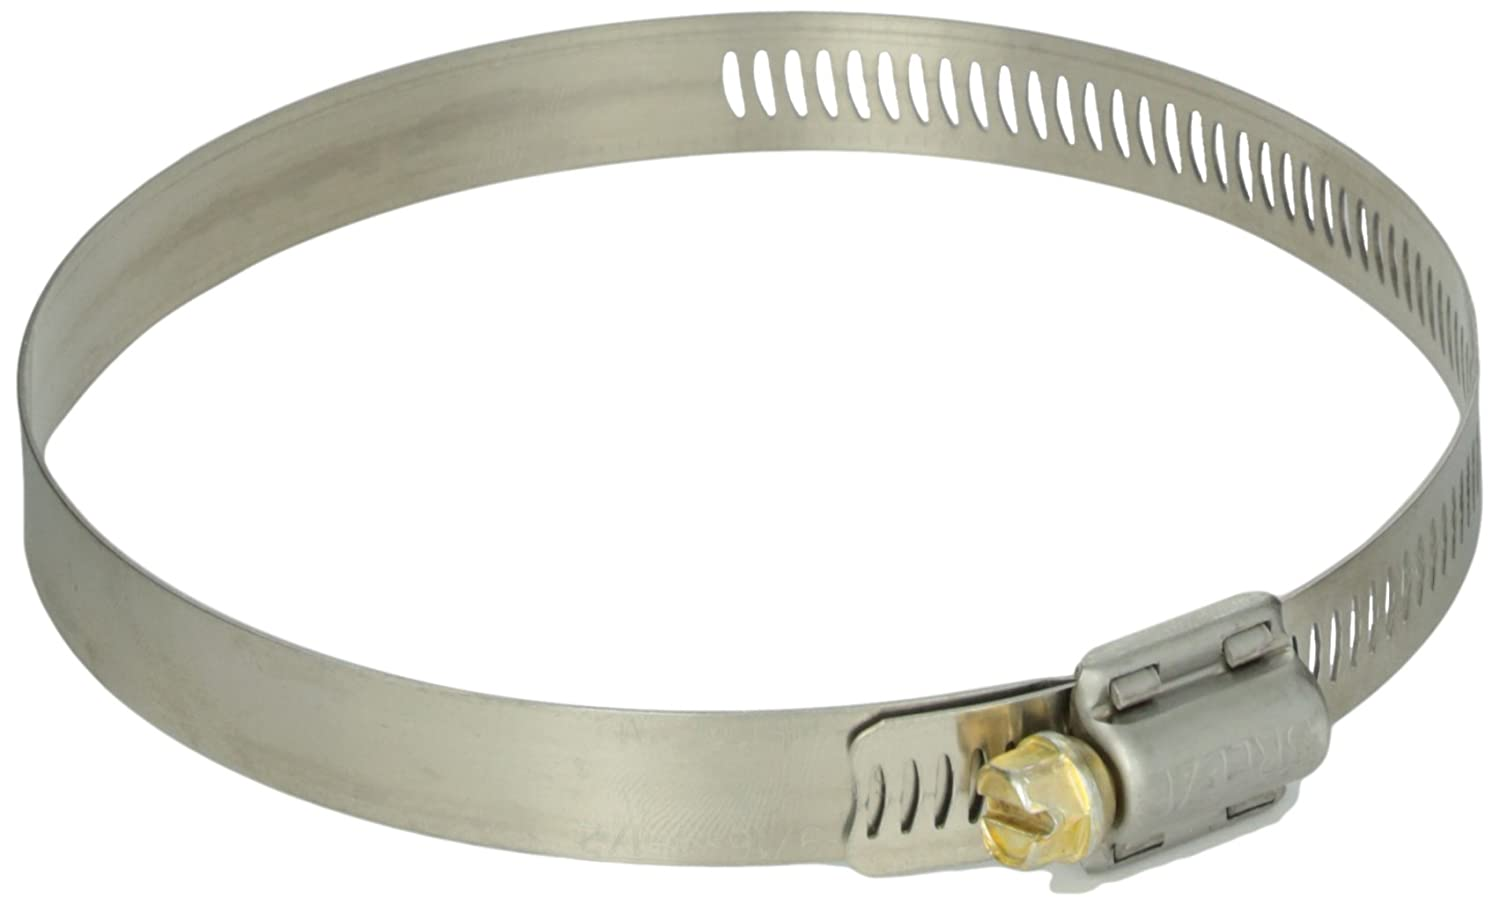 1//2 Bandwidth Pack of 10 SAE Size 64 3-9//16 to 4-1//2 Diameter Range 1//2 Bandwidth NOSLP 62064 64-BW 3-9//16 to 4-1//2 Diameter Range Pack of 10 Breeze Power-Seal Stainless Steel Hose Clamp Worm-Drive